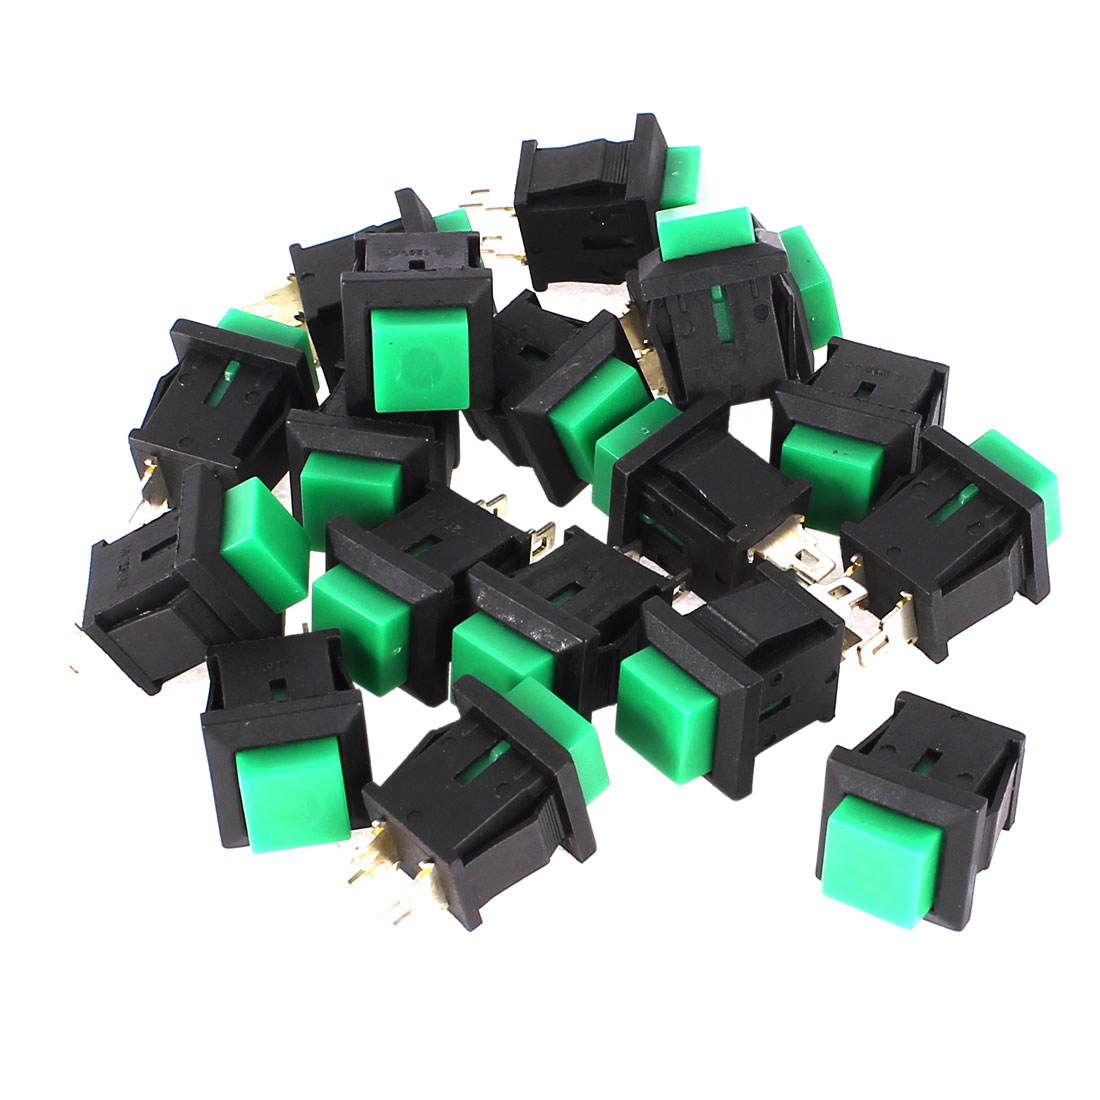 18 Pcs Momentary SPST Green Square Head Push Button Switch AC 125V 1A